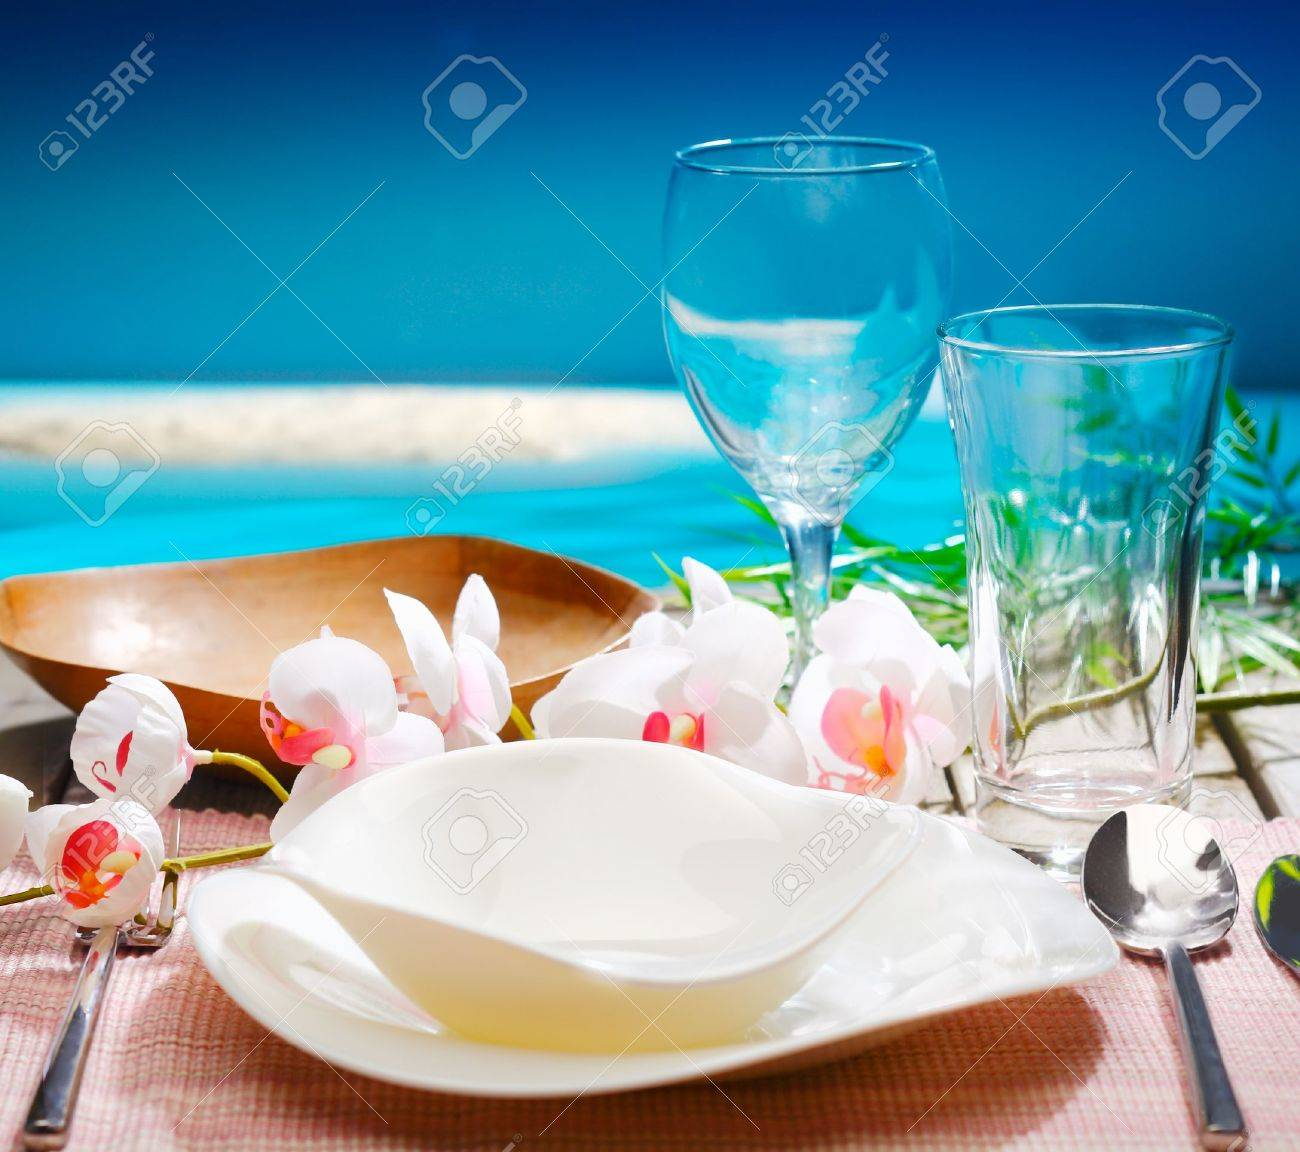 Restaurant table setting for two - Table For Two Decorative Tropical Table Setting With Stylish Dinnerware And Orchids Overlooking The Ocean